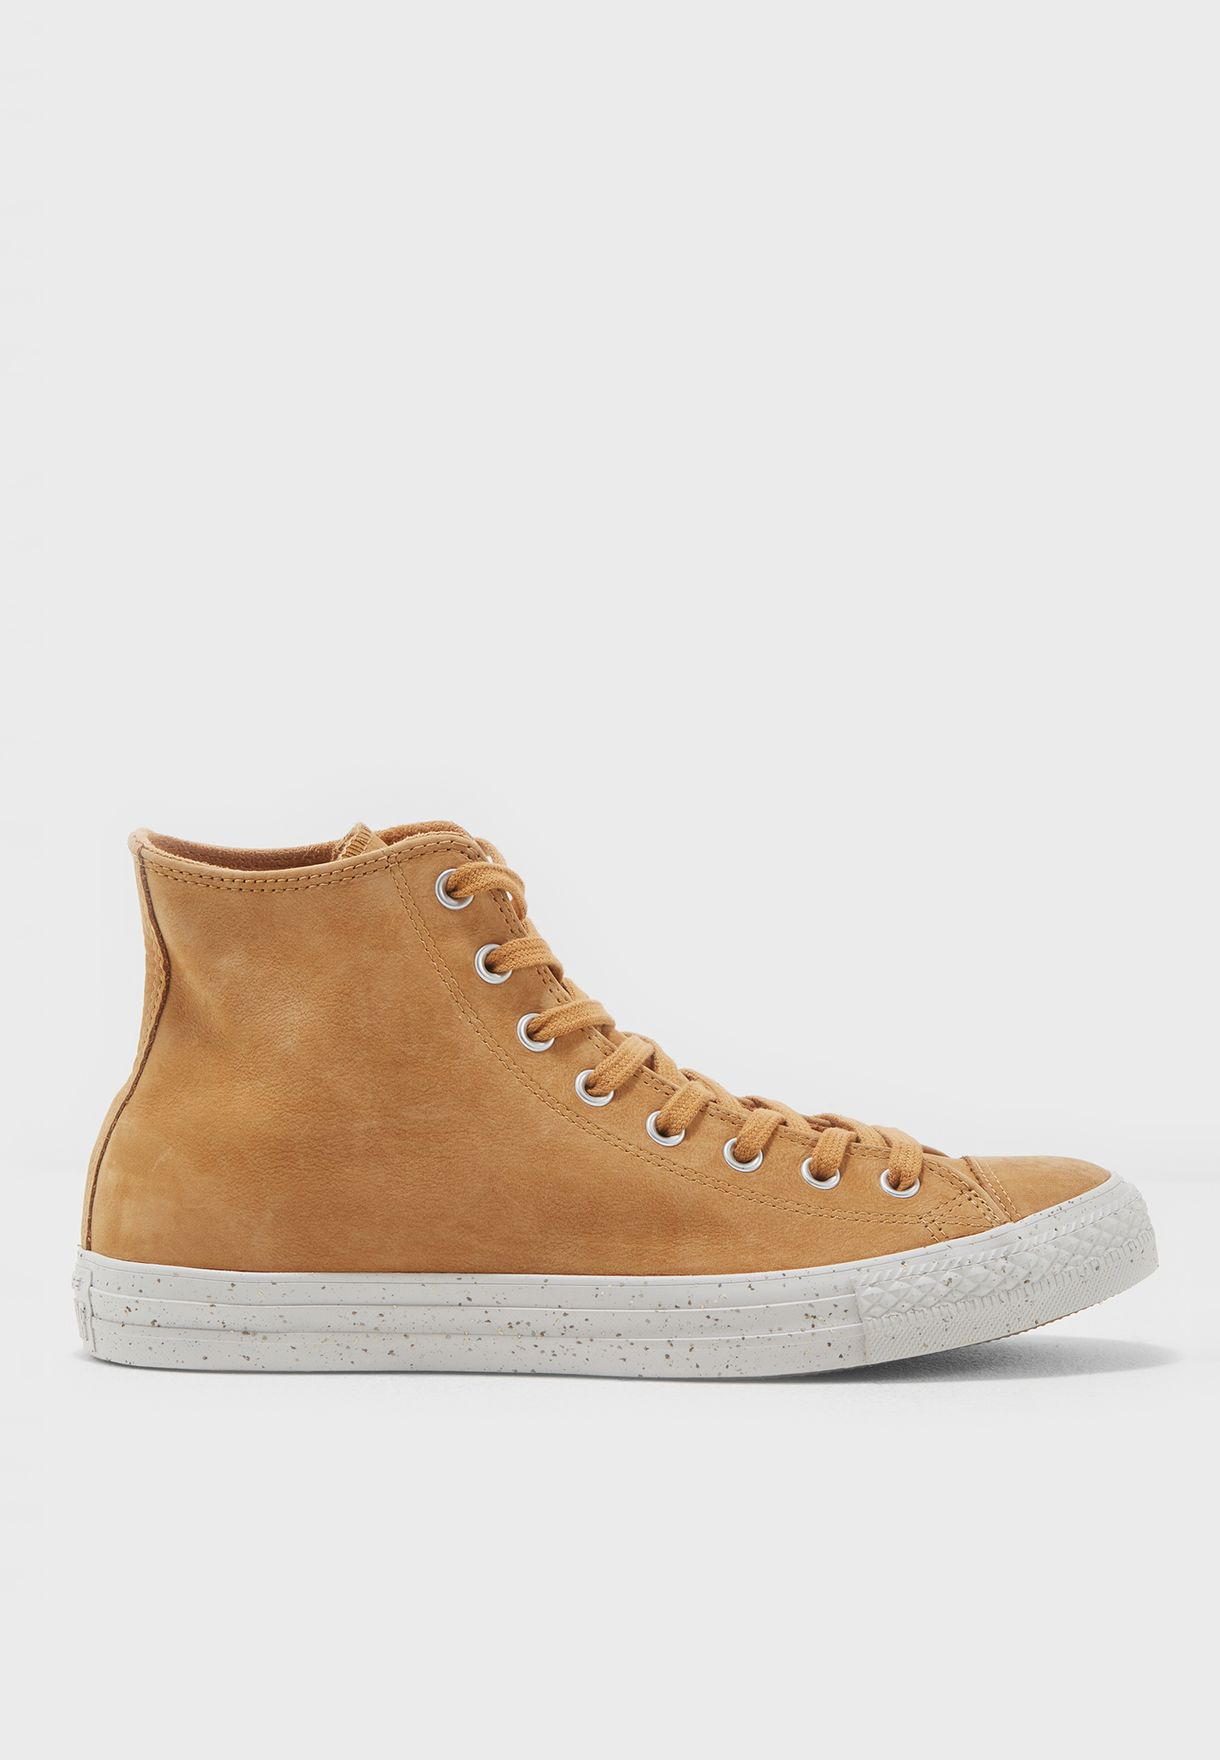 Shop Converse Chuck Taylor All Star Nubuck Mens Sneakers